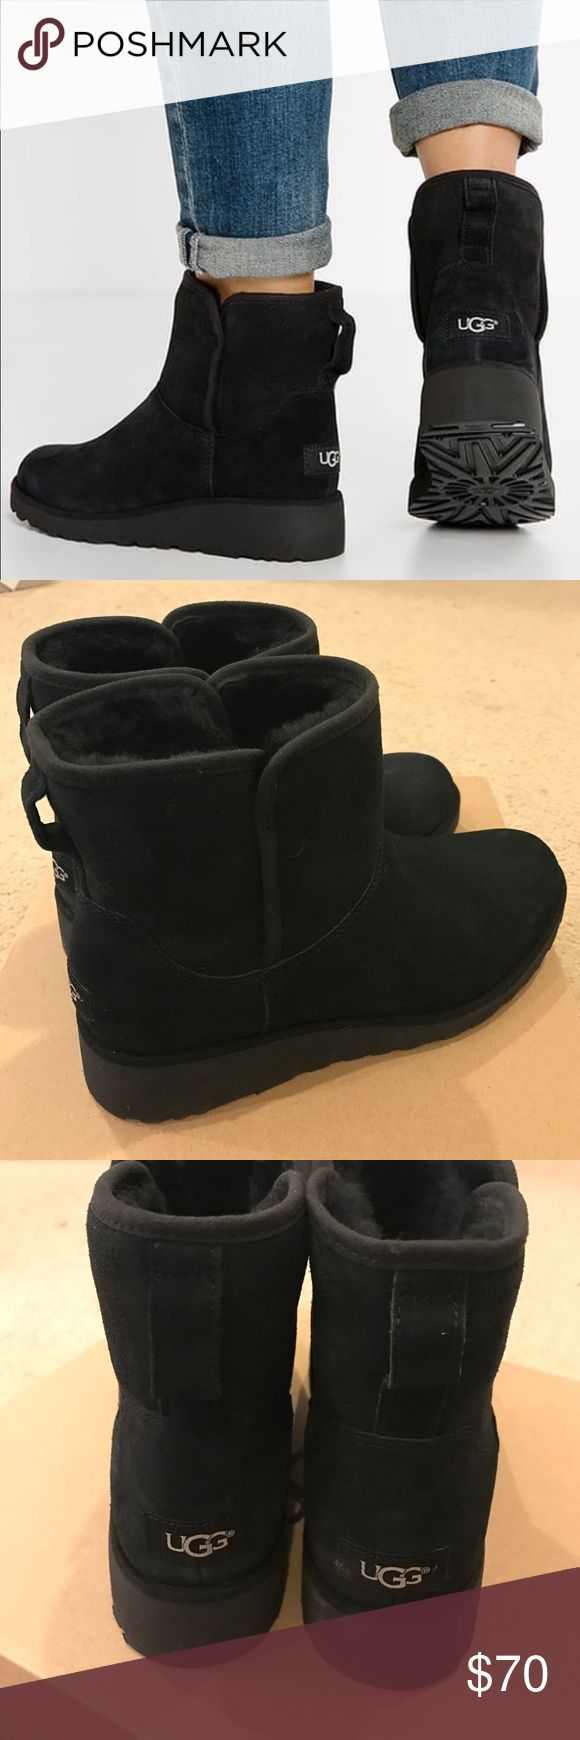 UGG Black wedge ankle boots The reason for the low price is the left is a 9 and the right a 9.5. They were used as store displays and never worn outside. In excellent condition. Authentic. UGG Shoes Winter & Rain Boots